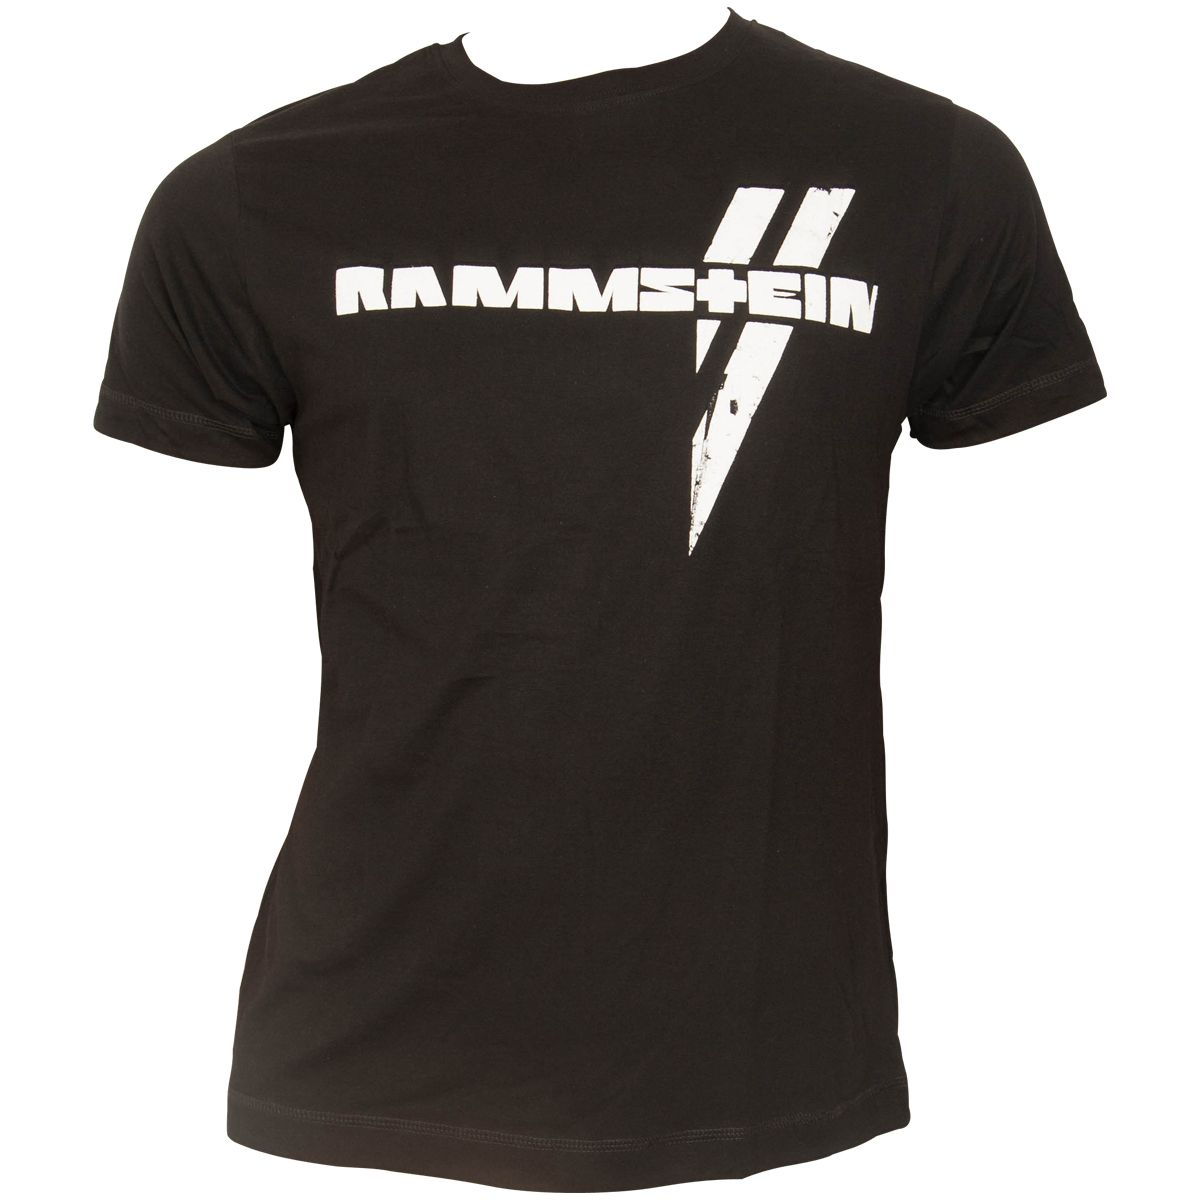 rammstein schwarzes t shirt wei er balken rocknshop. Black Bedroom Furniture Sets. Home Design Ideas